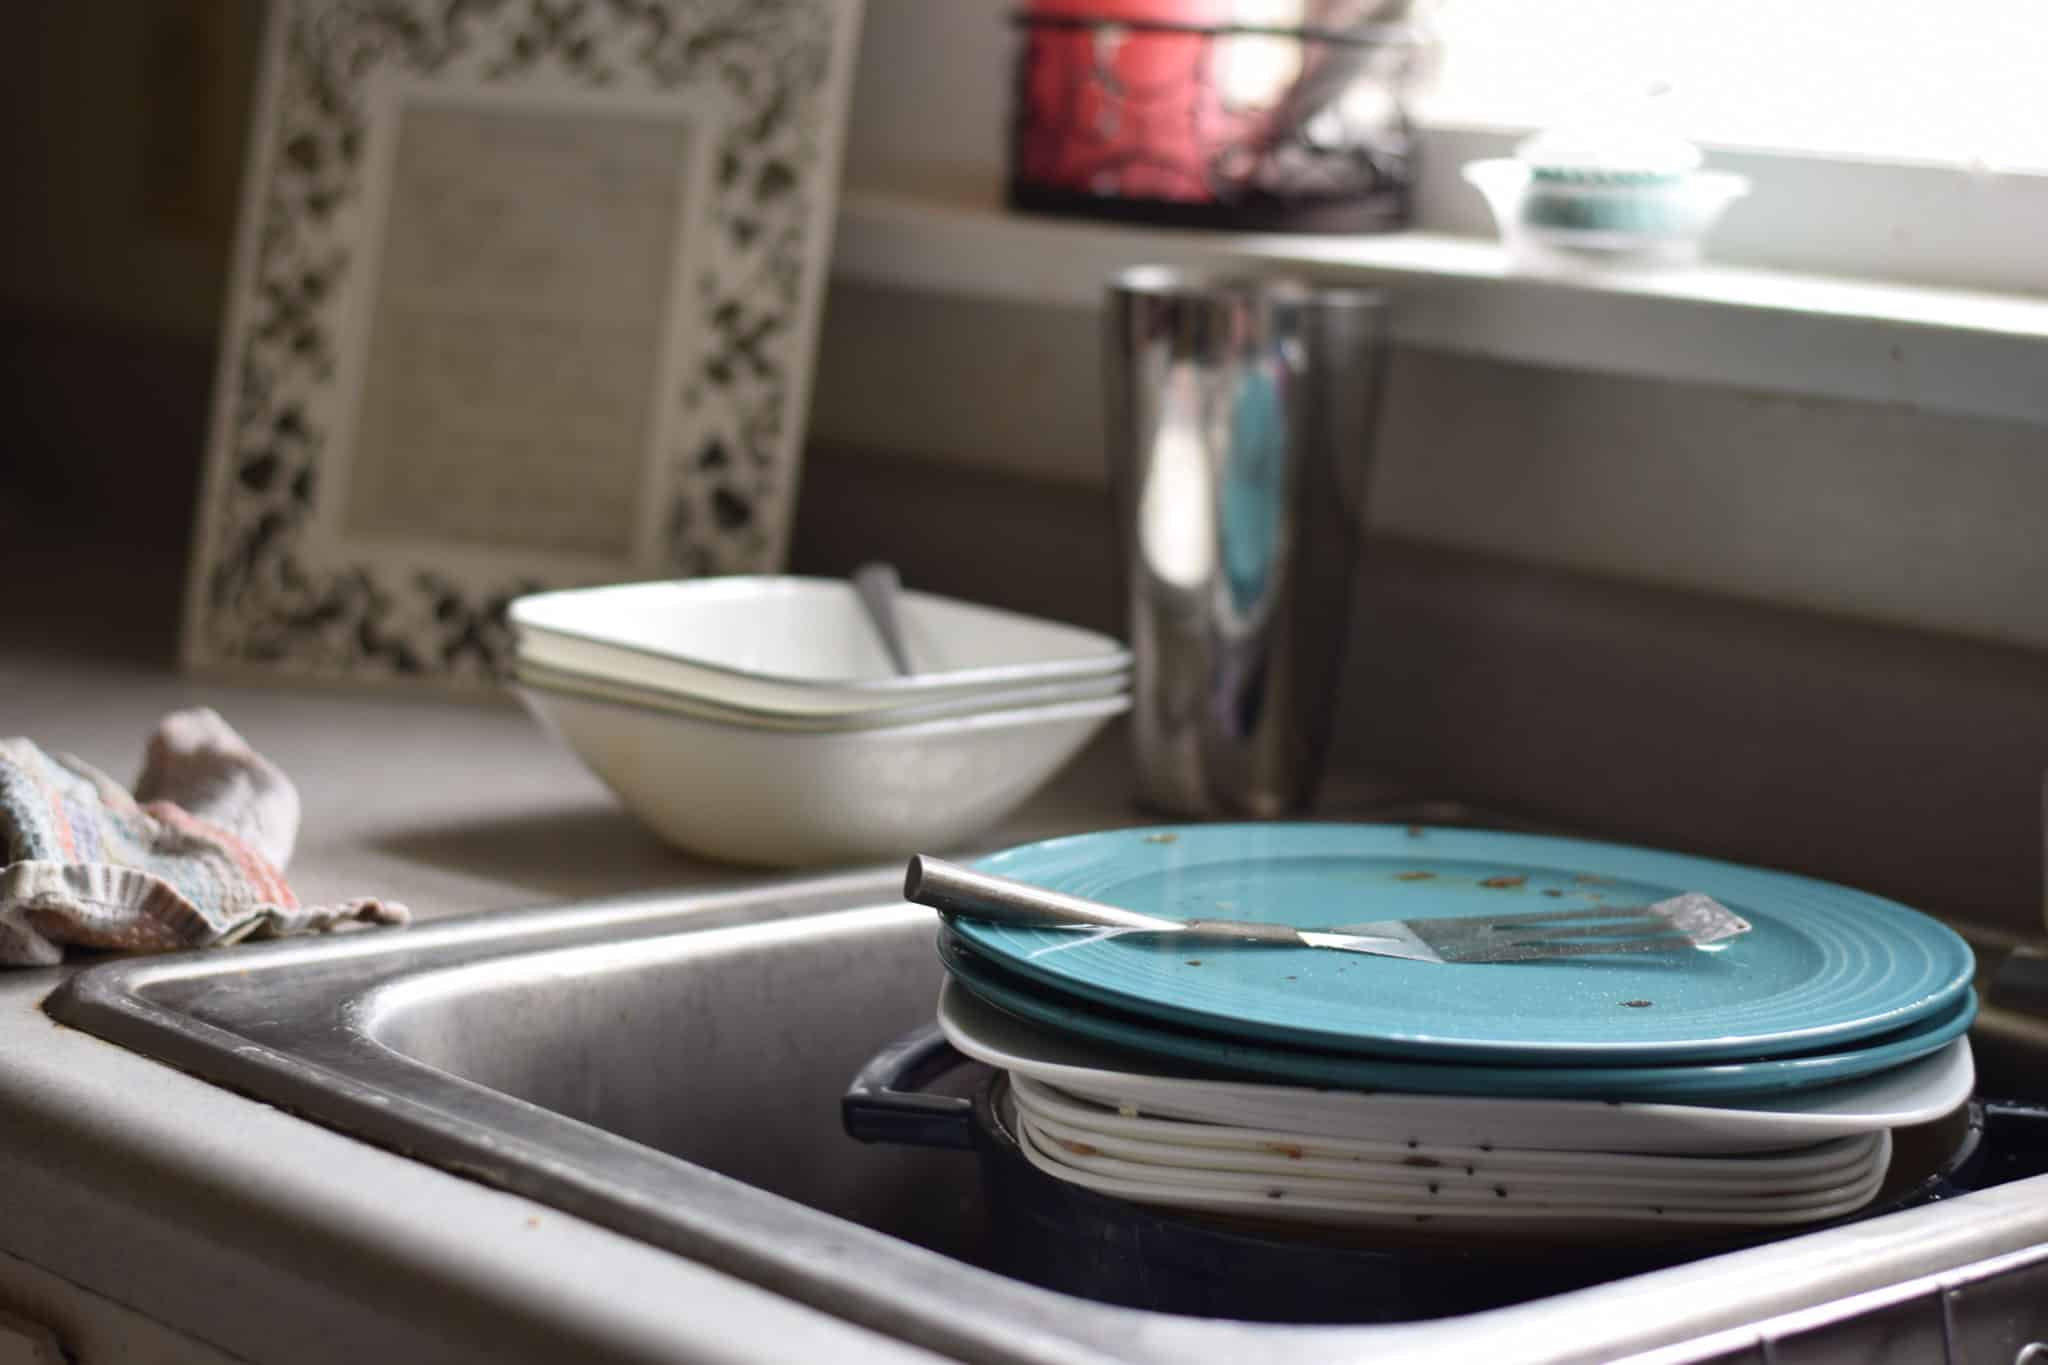 pile of dirty dishes in sink